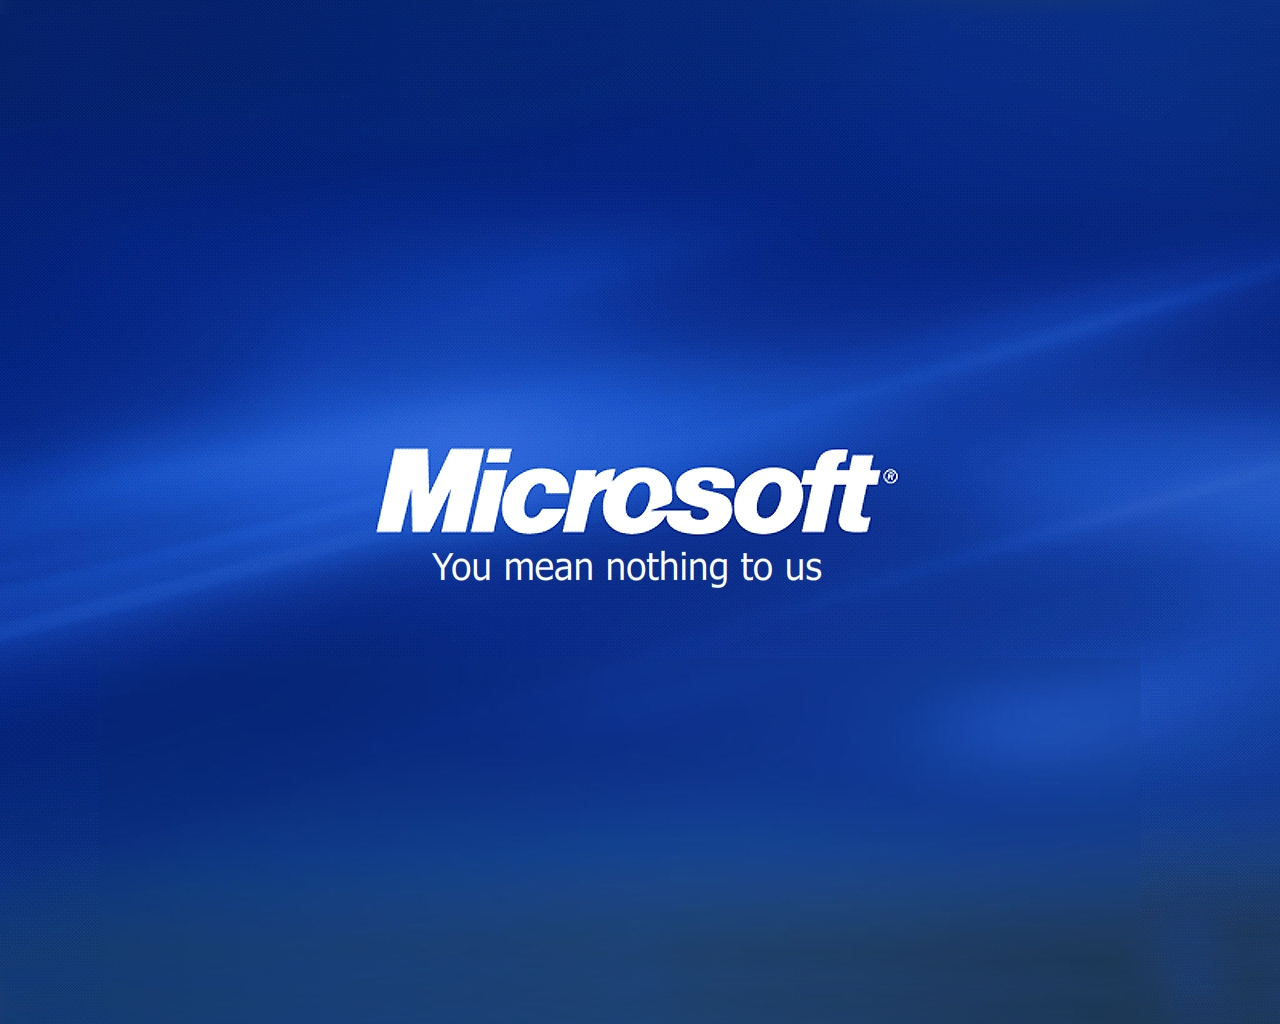 Microsoft Backgrounds Download HD Wallpapers 1280x1024